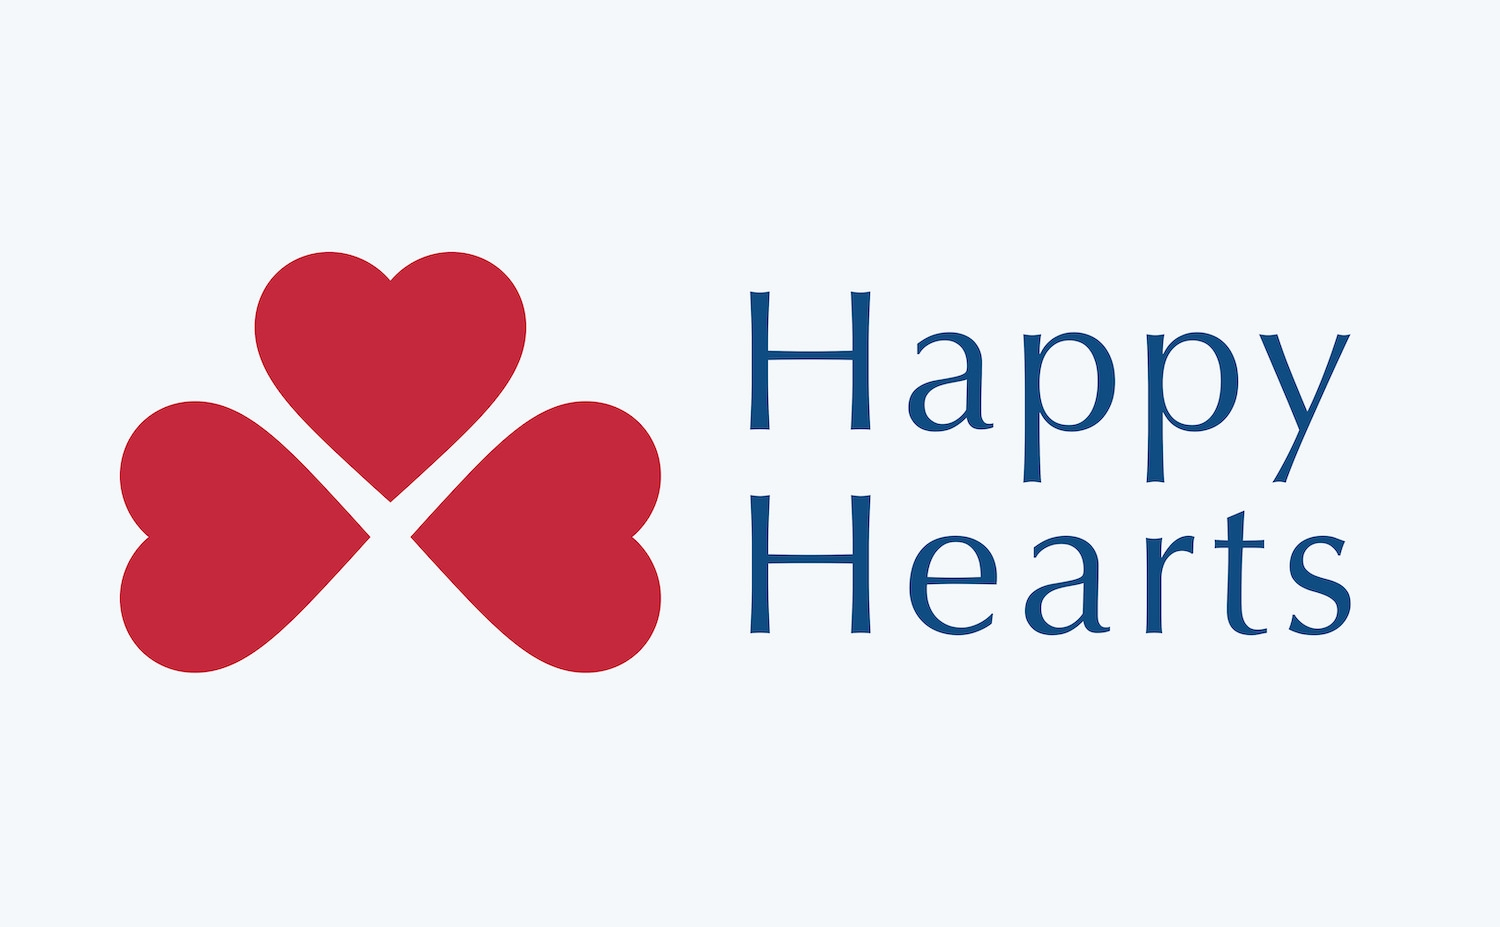 Happy Hearts full-color logo in trustworthy blue and appealing red.